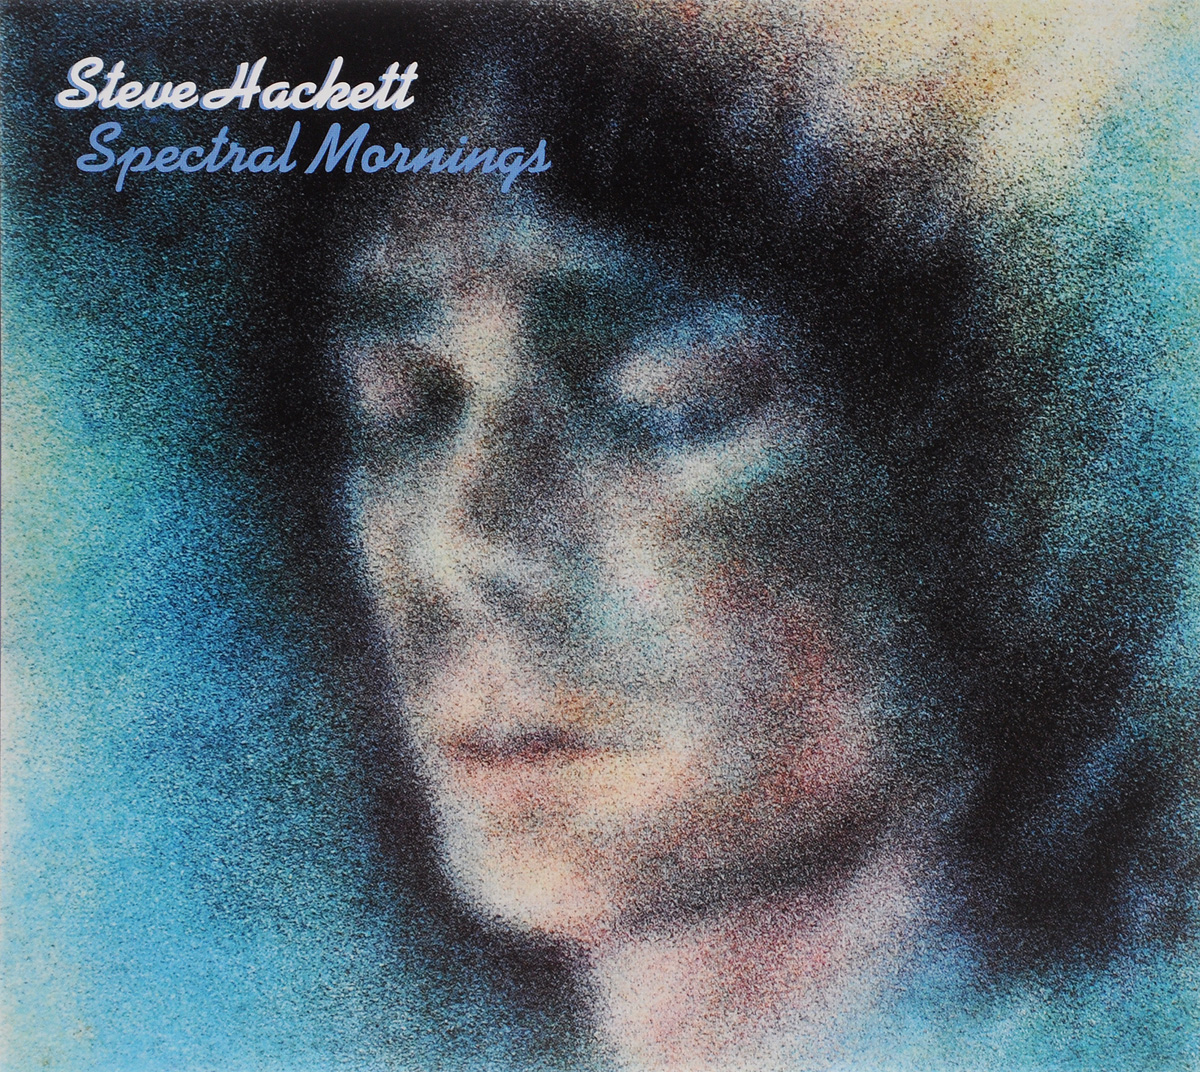 Стив Хэкетт Steve Hackett. Spectral Mornings (3 CD) steve hackett steve hackett wolflight 2 lp cd